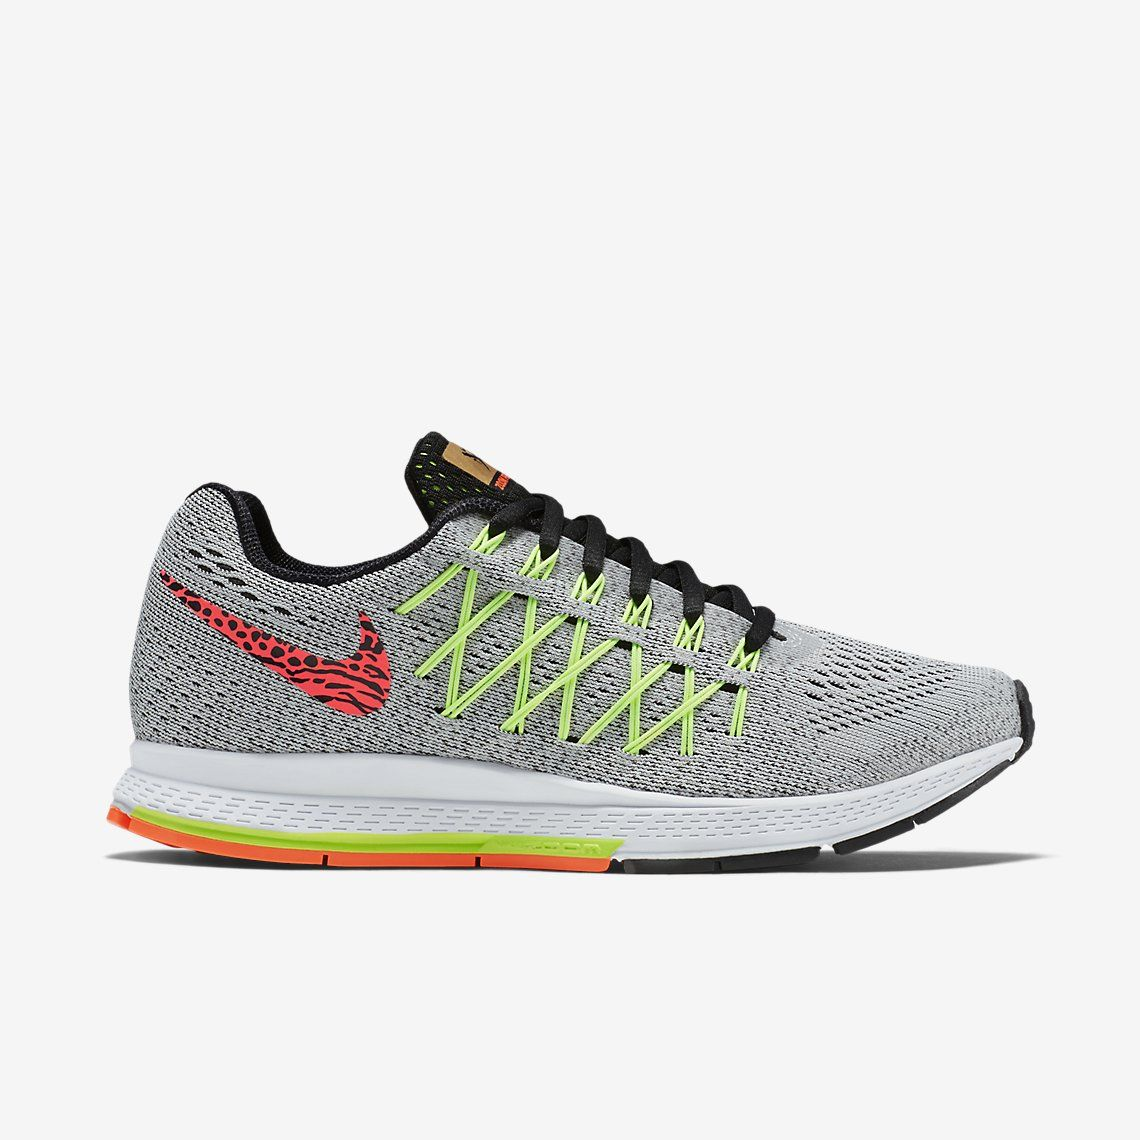 534f3df3e9014 ... shop nike air zoom pegasus 32 womens running shoe. size 9.5 nike store  ropa de ...